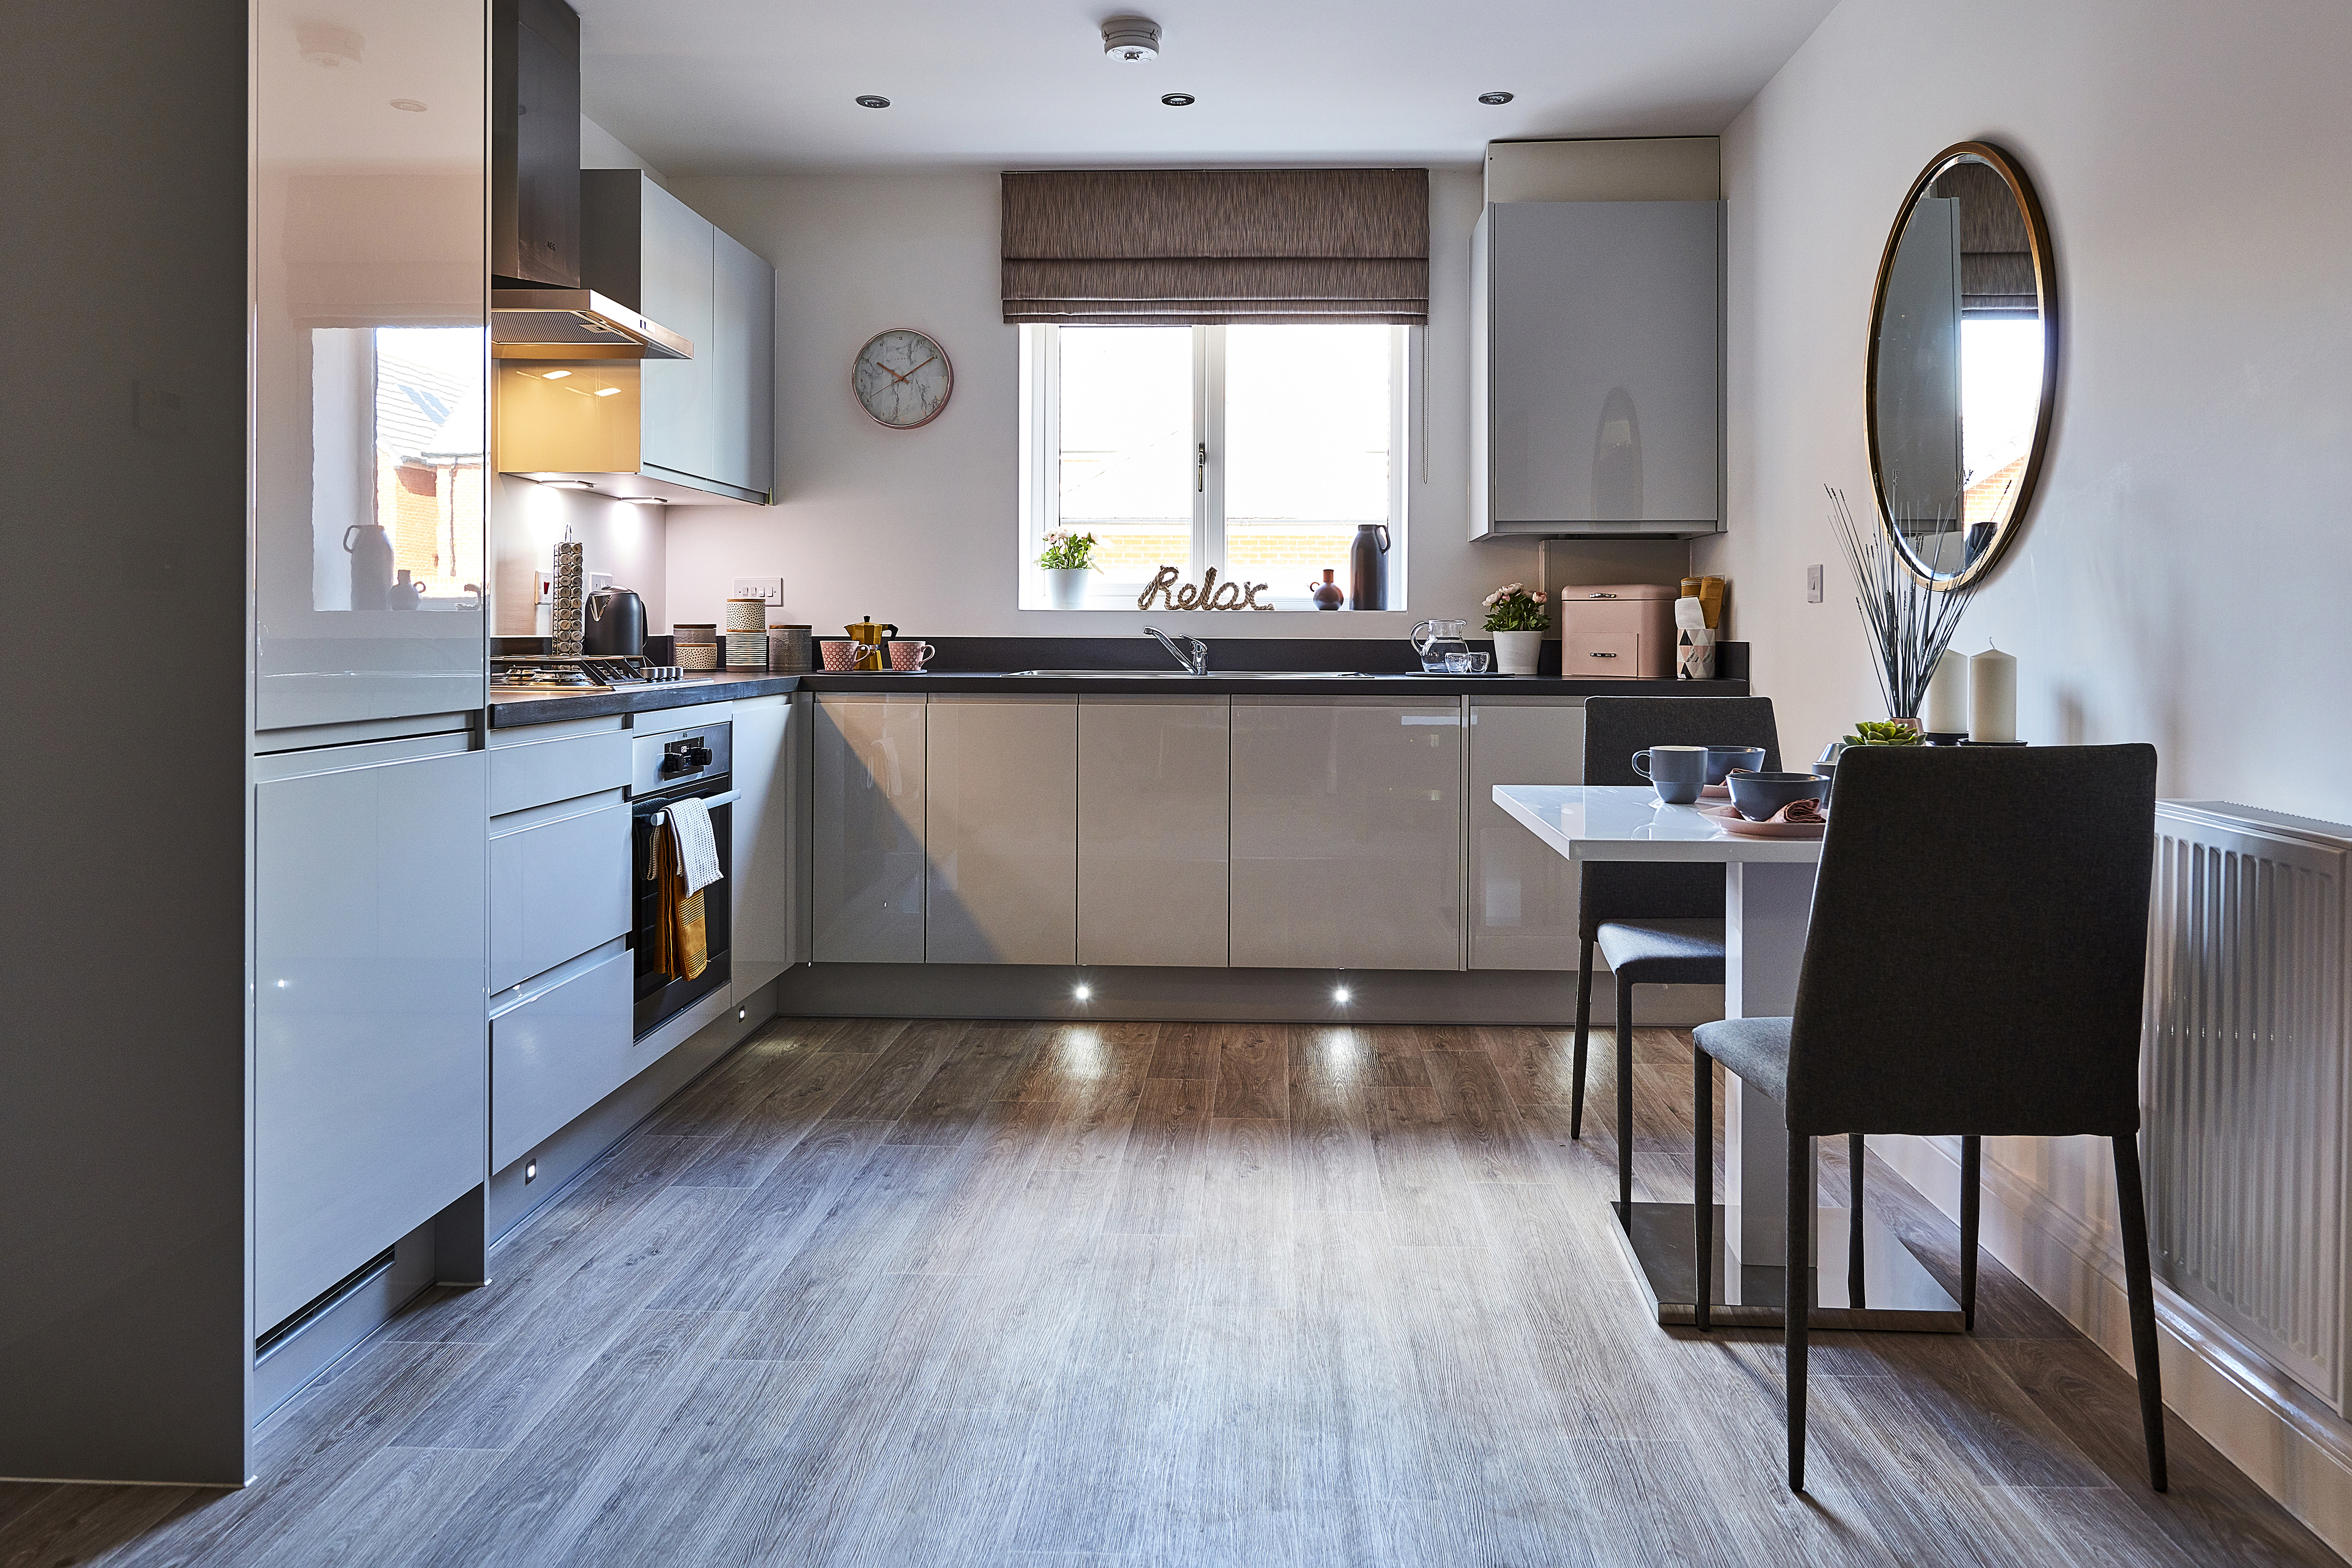 TW WL Croft Garden_Spencers Wood_plot 665 _2 bed apartment_Kitchen_Dining